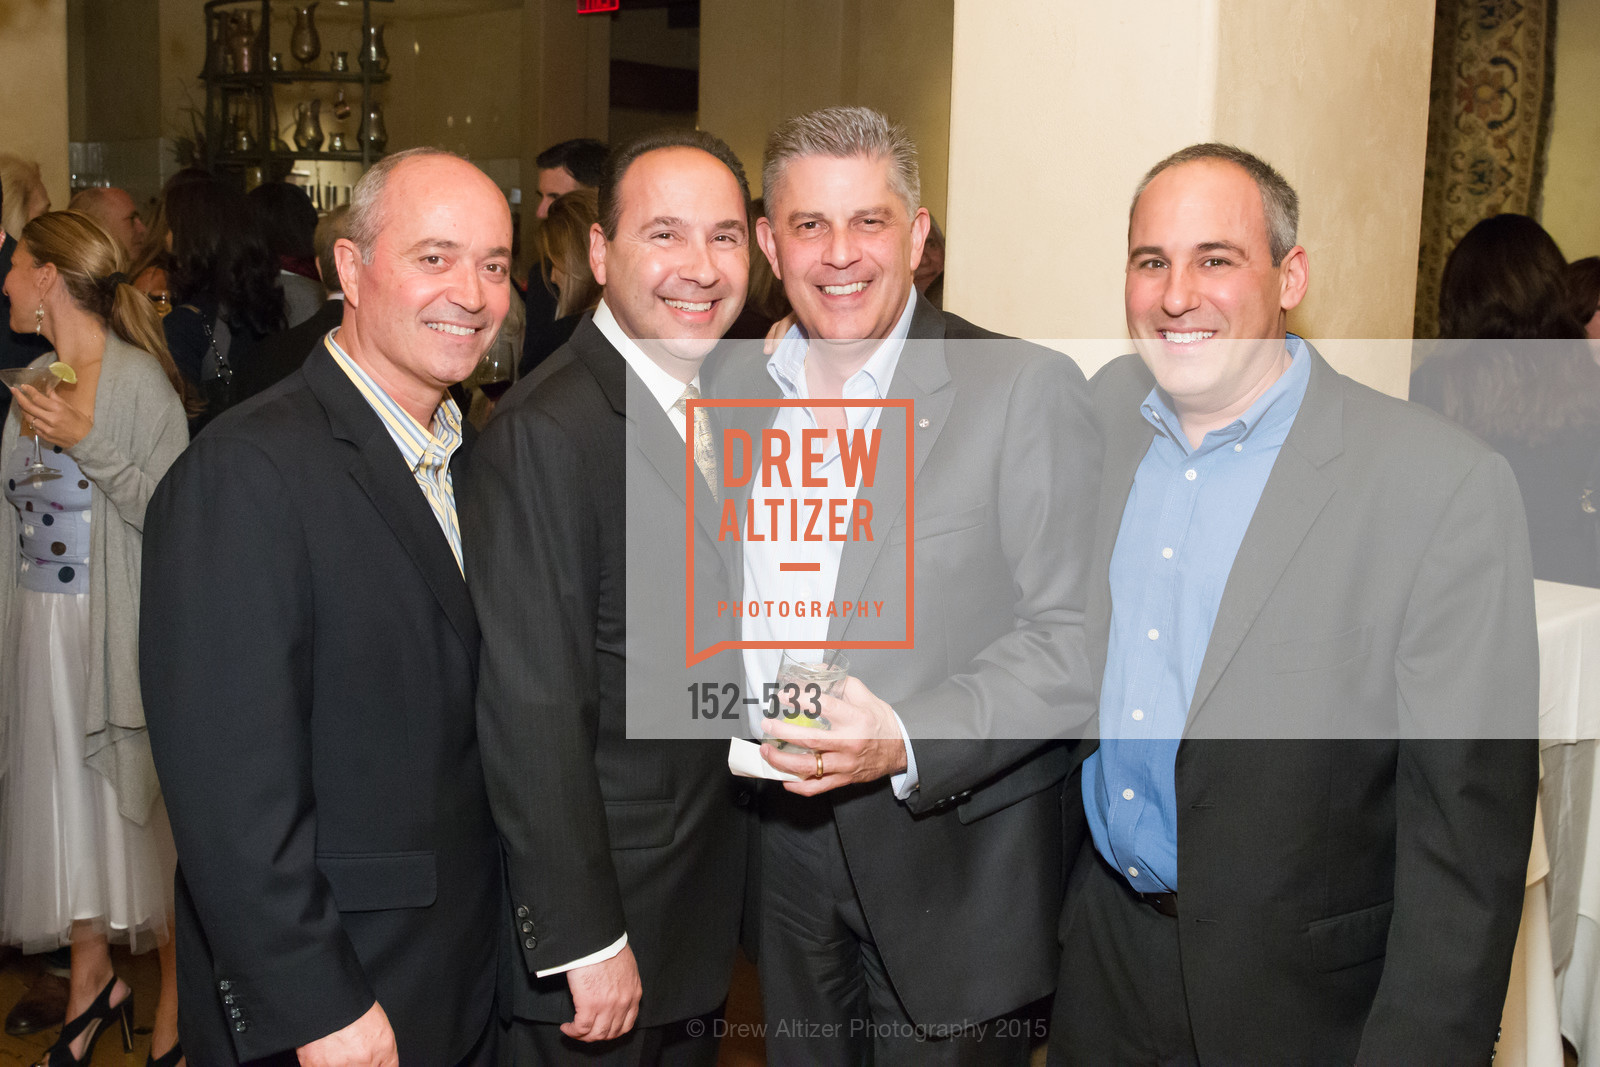 John Gumas, Gary Vrionis, Paul Sogotis, Dino Constantinides, Hellenic Charity Ball Cocktail Reception, Kokkari. 200 Jackson St, San Francisco, CA 94111, November 13th, 2015,Drew Altizer, Drew Altizer Photography, full-service event agency, private events, San Francisco photographer, photographer California